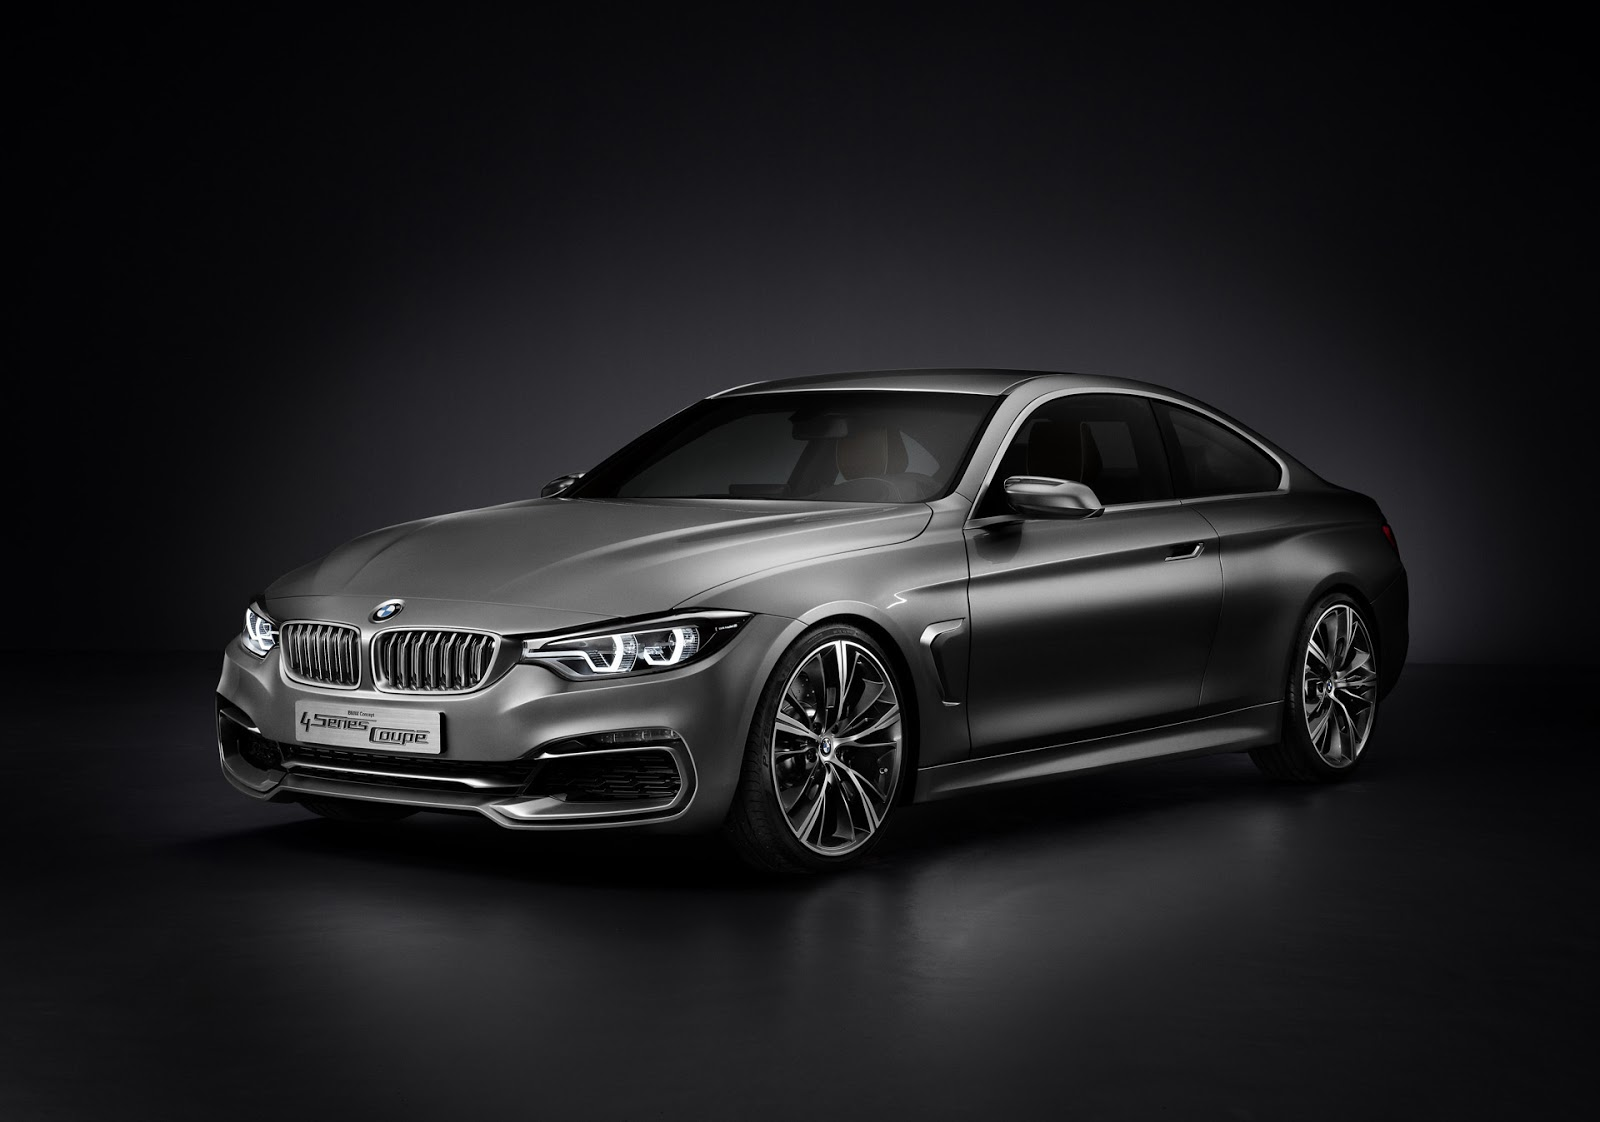 The Stunning BMW Concept 4 Series Coupe - BMW Markham